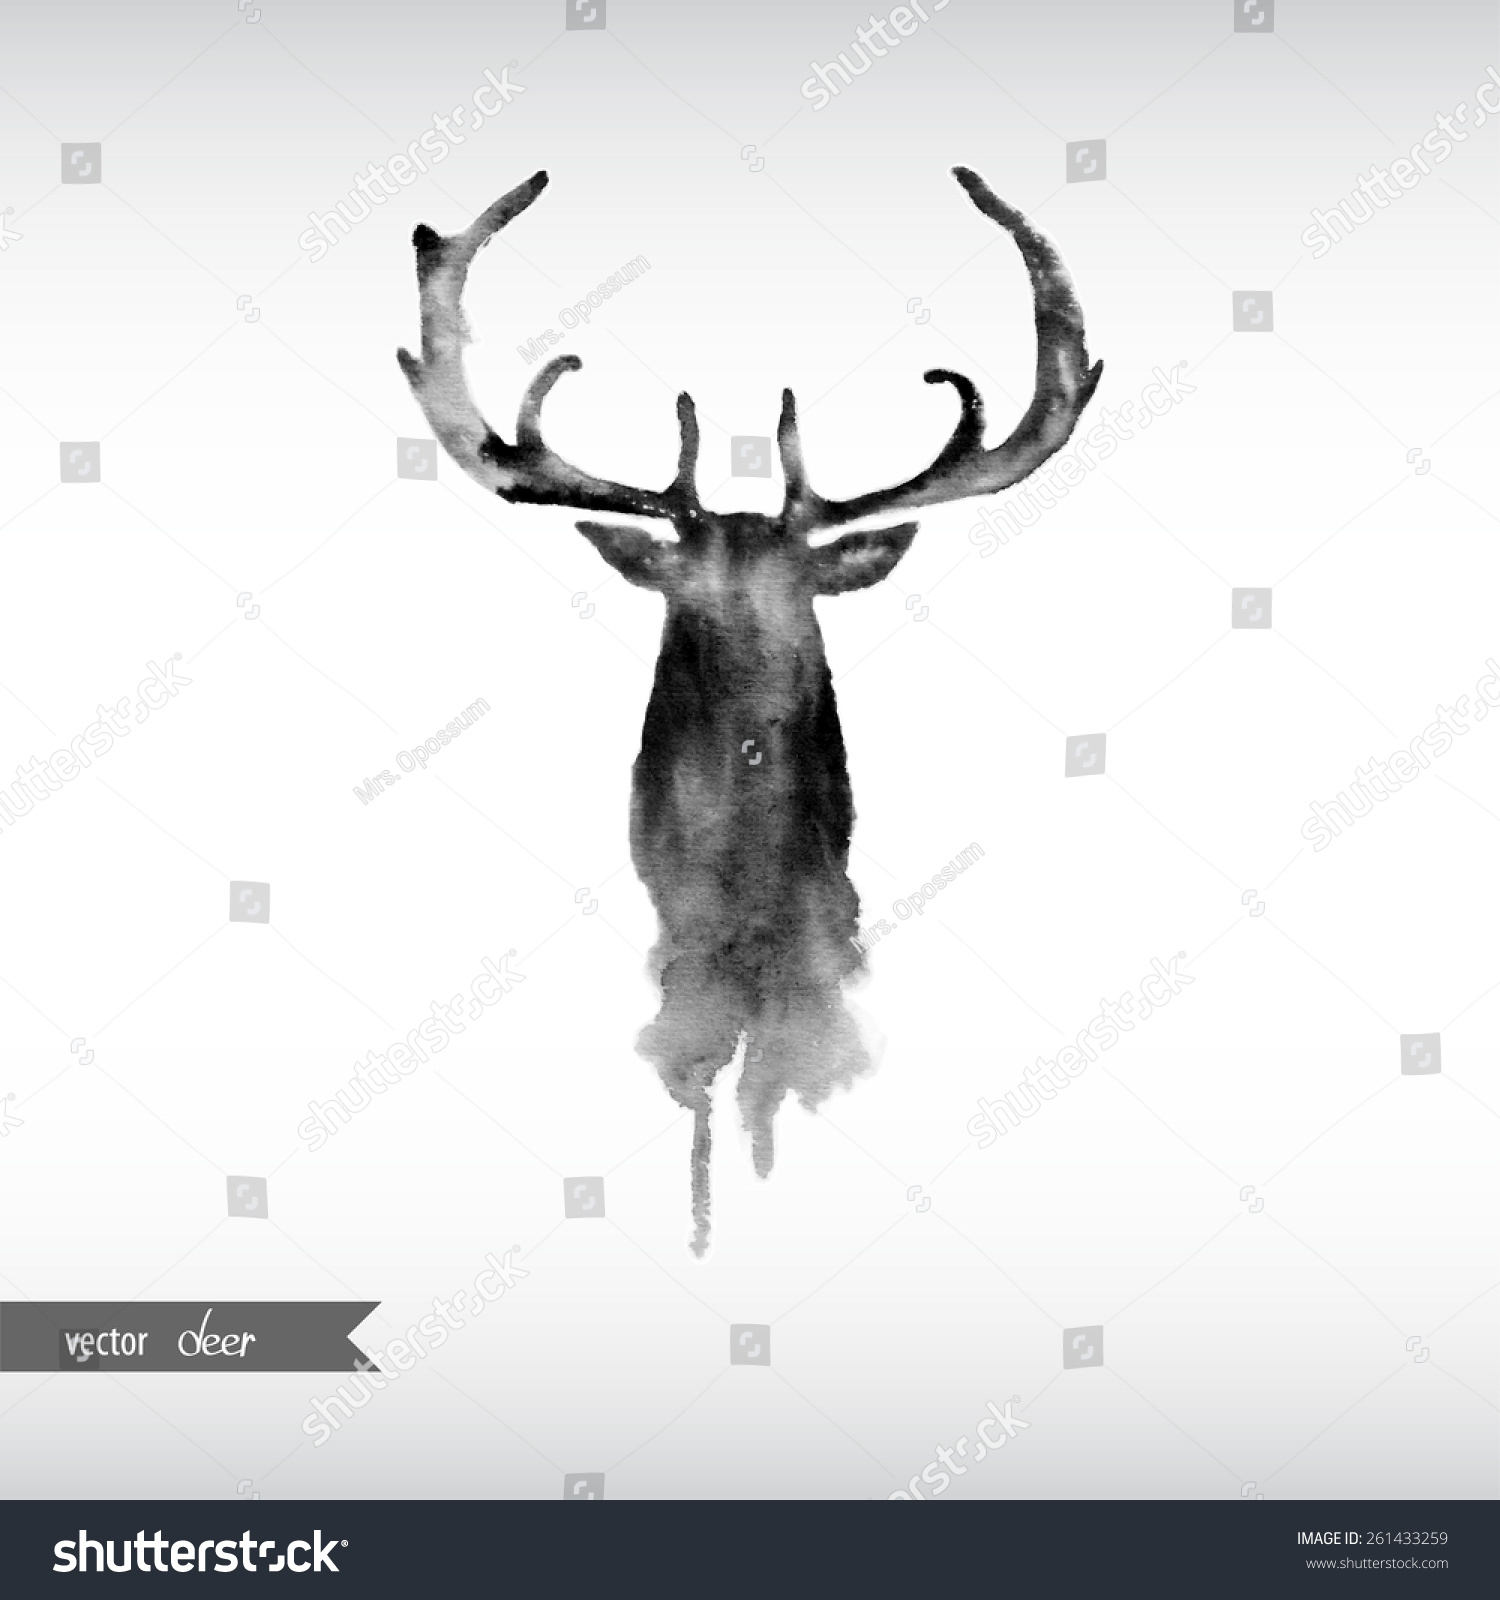 Deer illustration black and white - photo#8